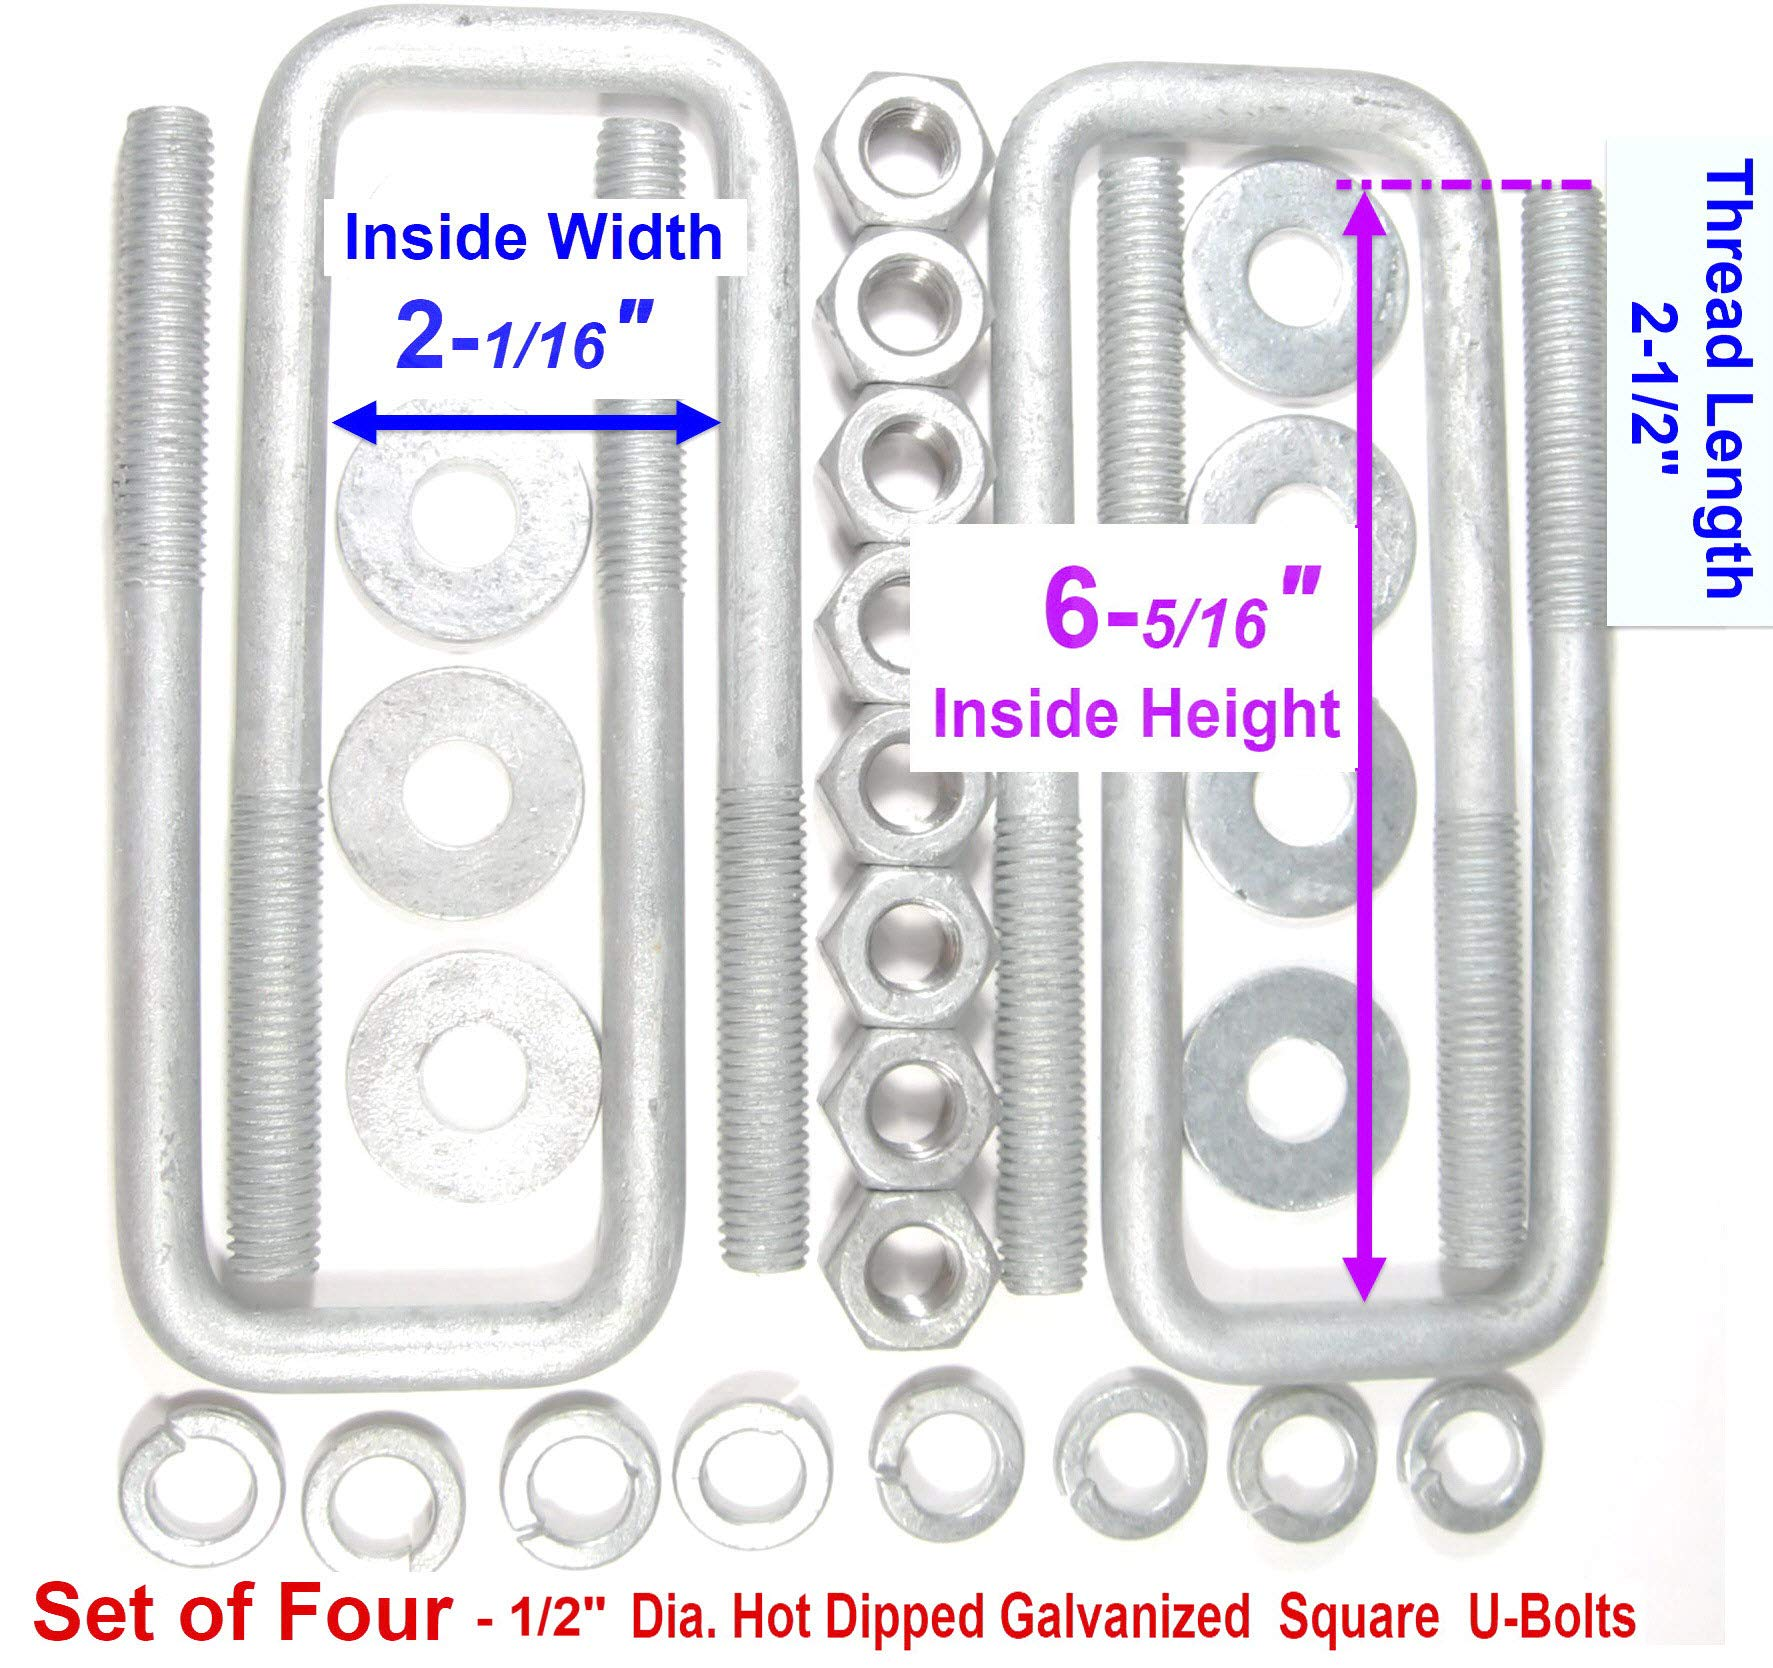 TMW (4) HDG Hot Dipped Galvanized Square U-Bolt Boat Trailer U bolt Ubolt 1/2'' D x 2 1/16'' W x 6 5/16'' L